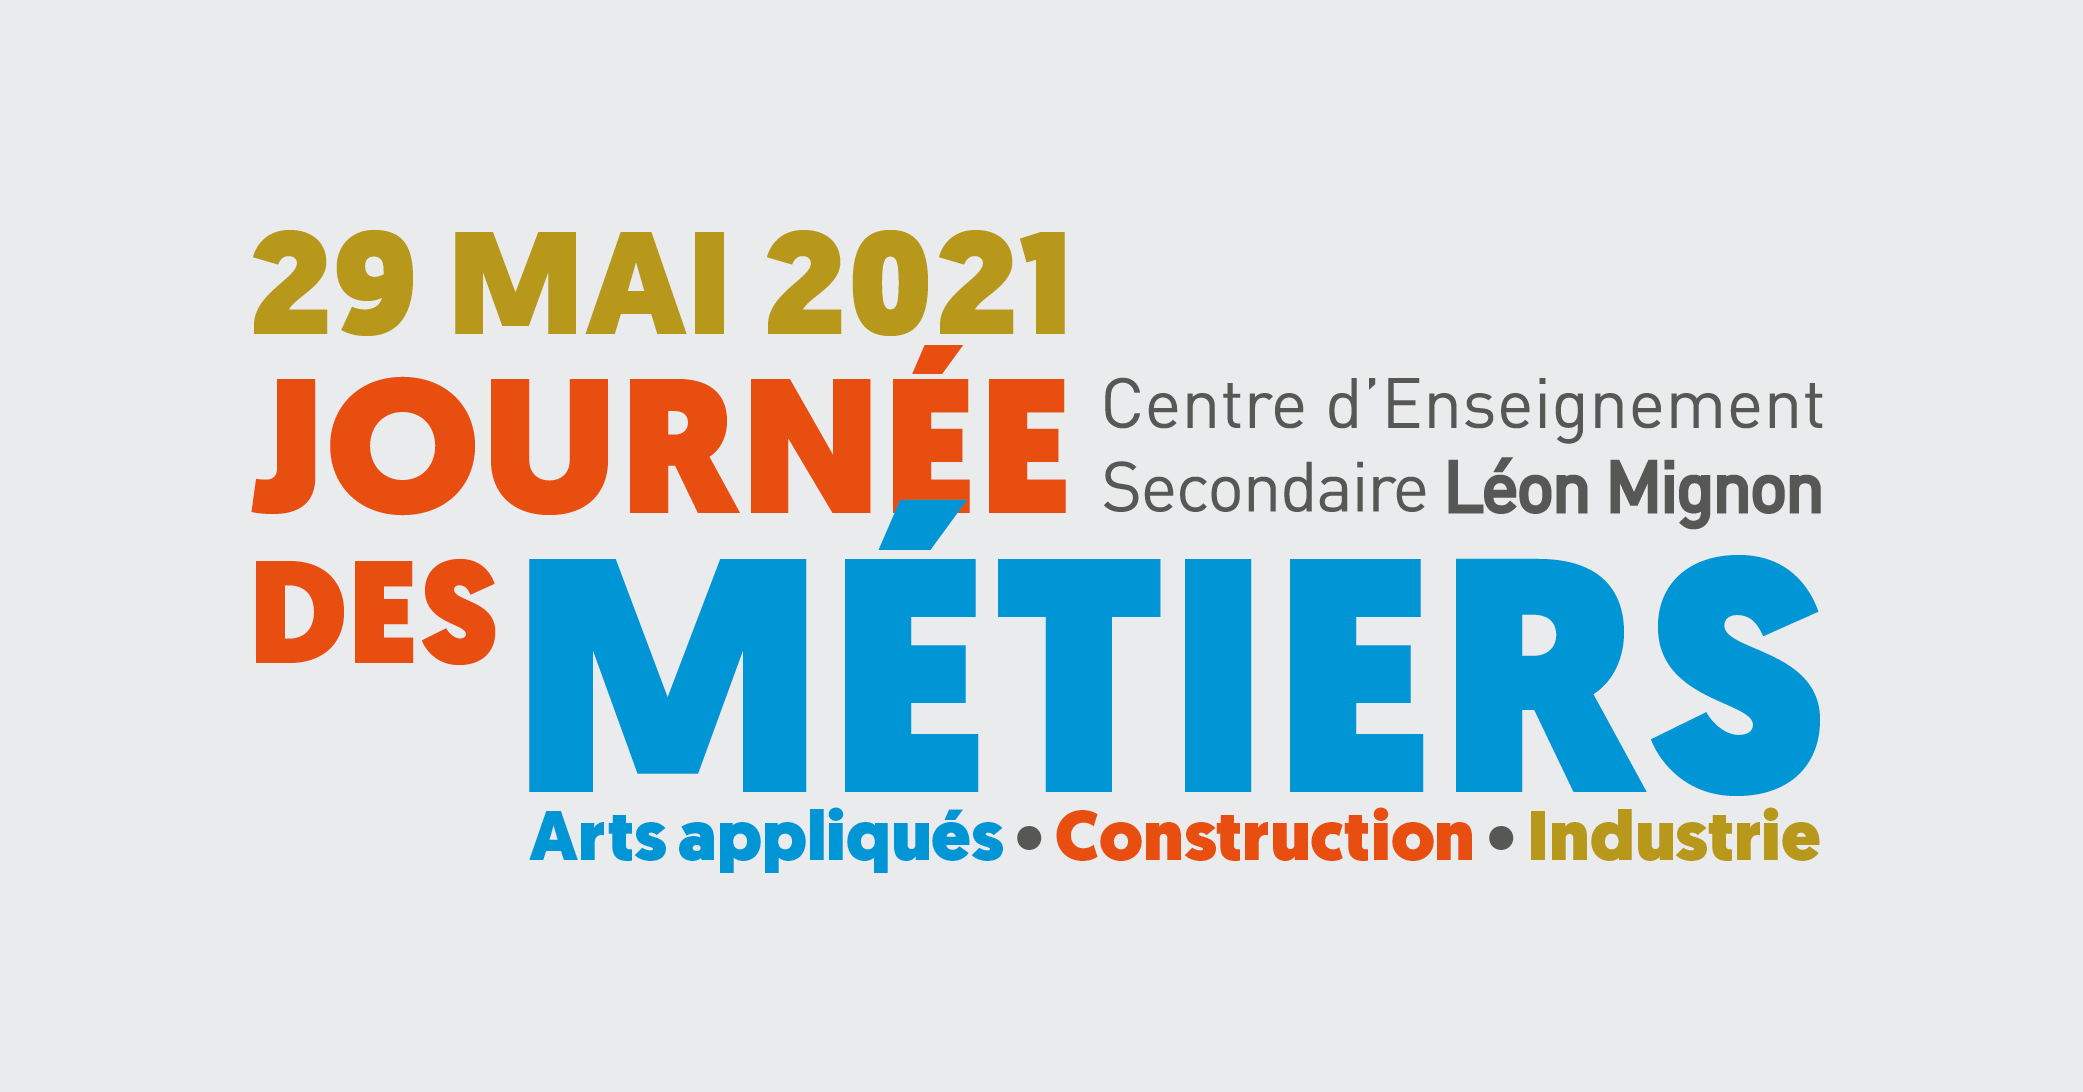 CESLM-JOURNEE-METIERS-21